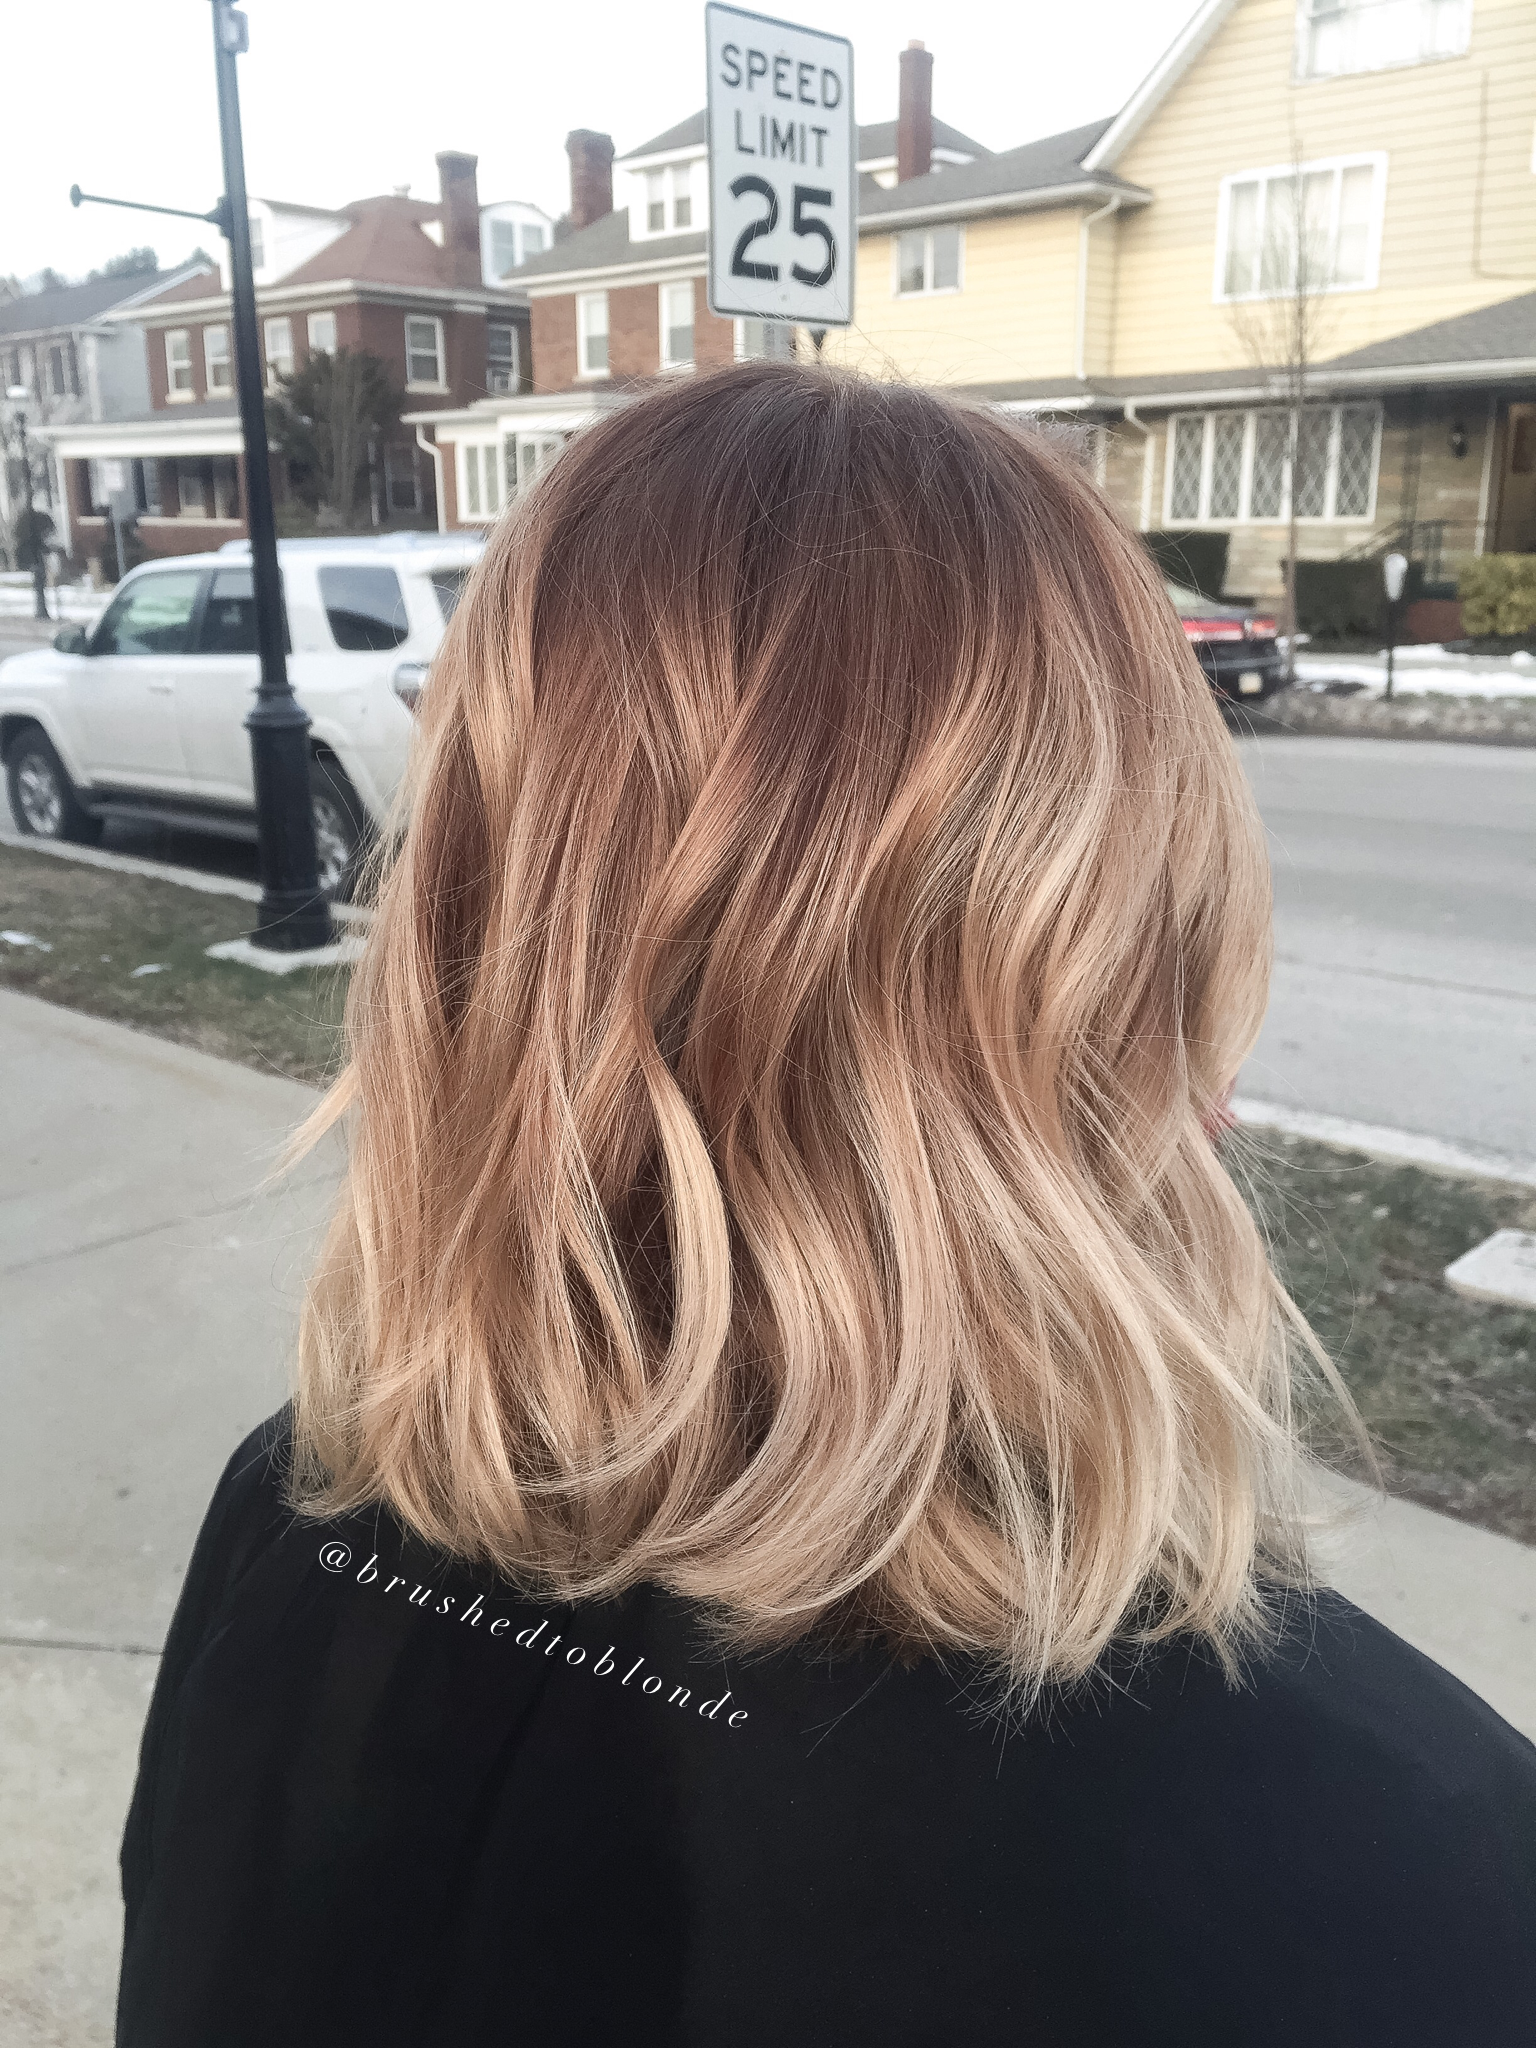 honey blonde balayage over a warm copper brown base by danielle hess beauty fashion. Black Bedroom Furniture Sets. Home Design Ideas